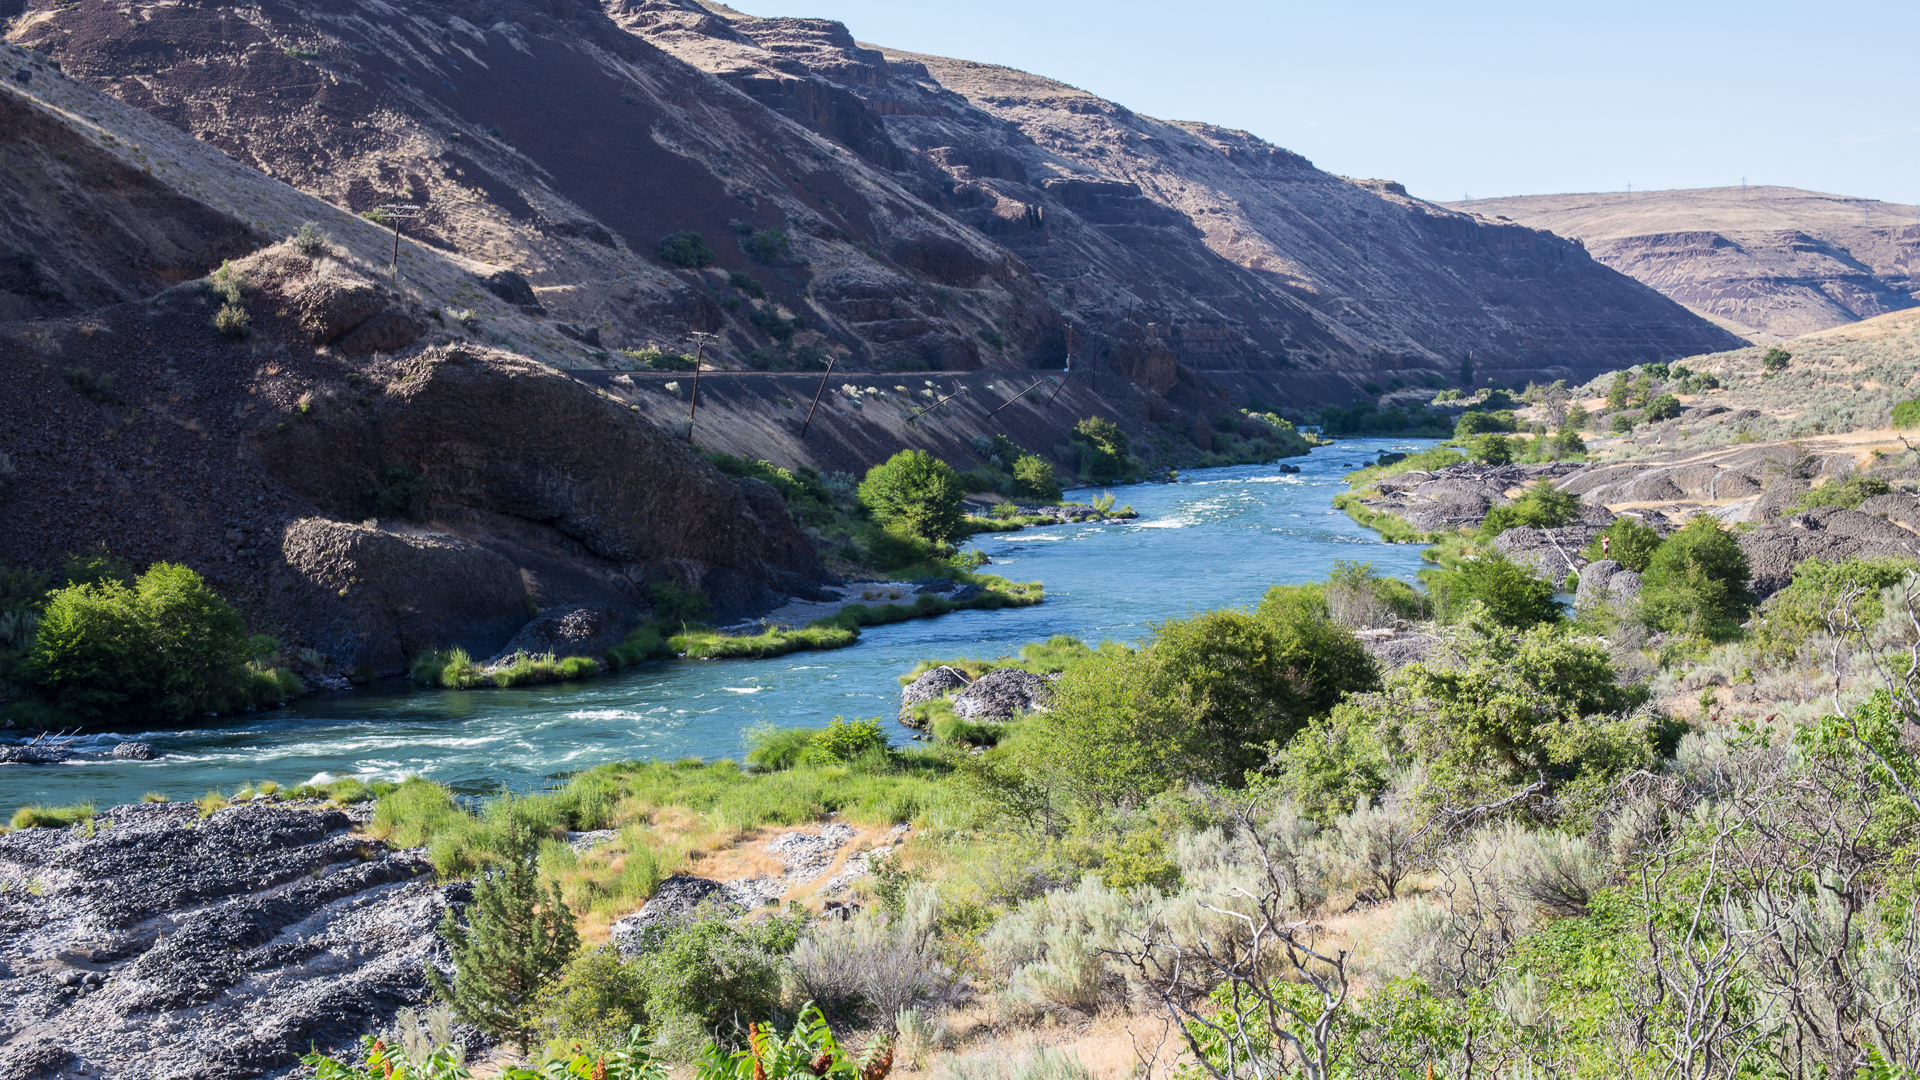 The gorgeous Deschutes River, and part of our journey.